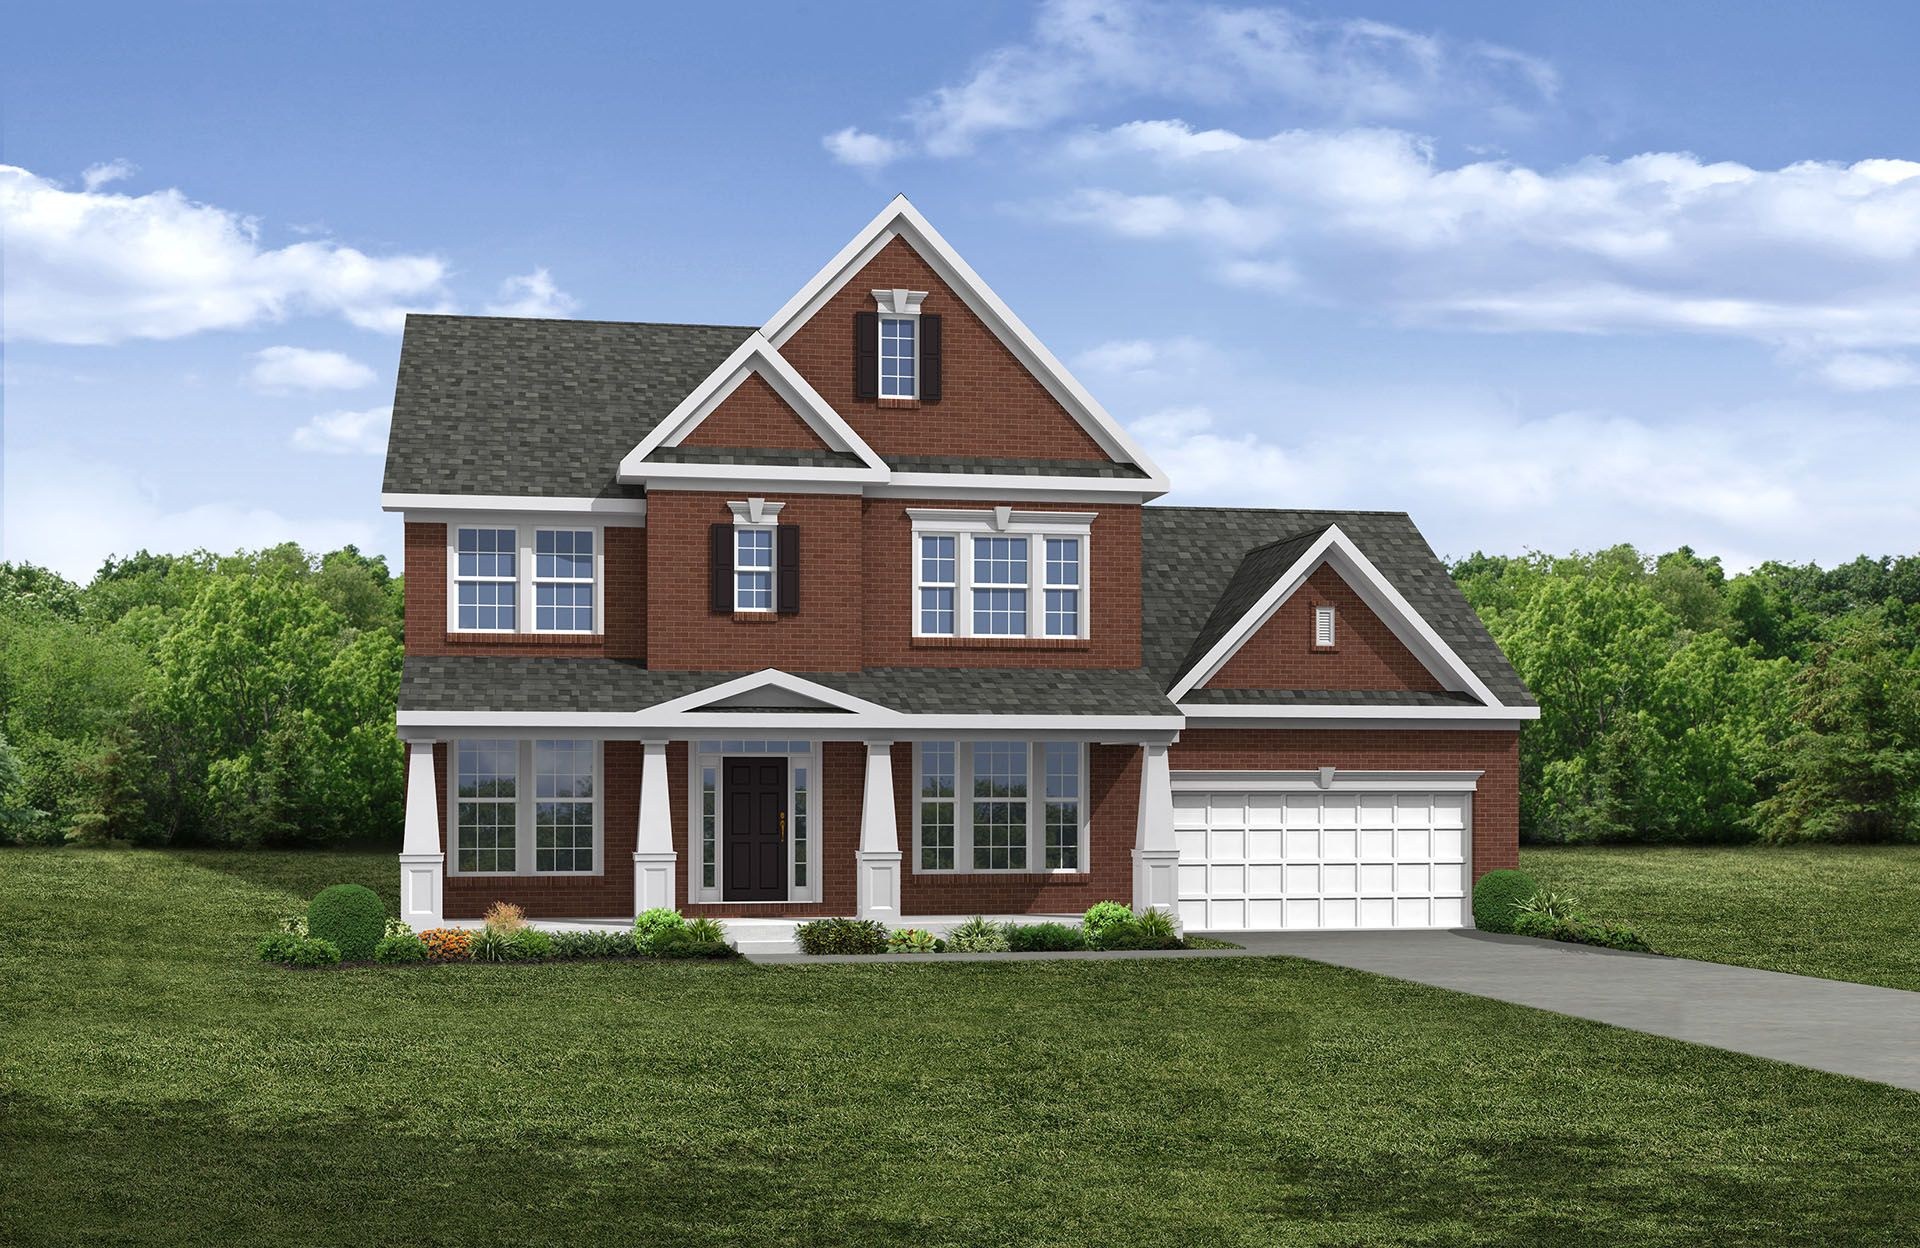 Woods of Stradford by Drees Homes